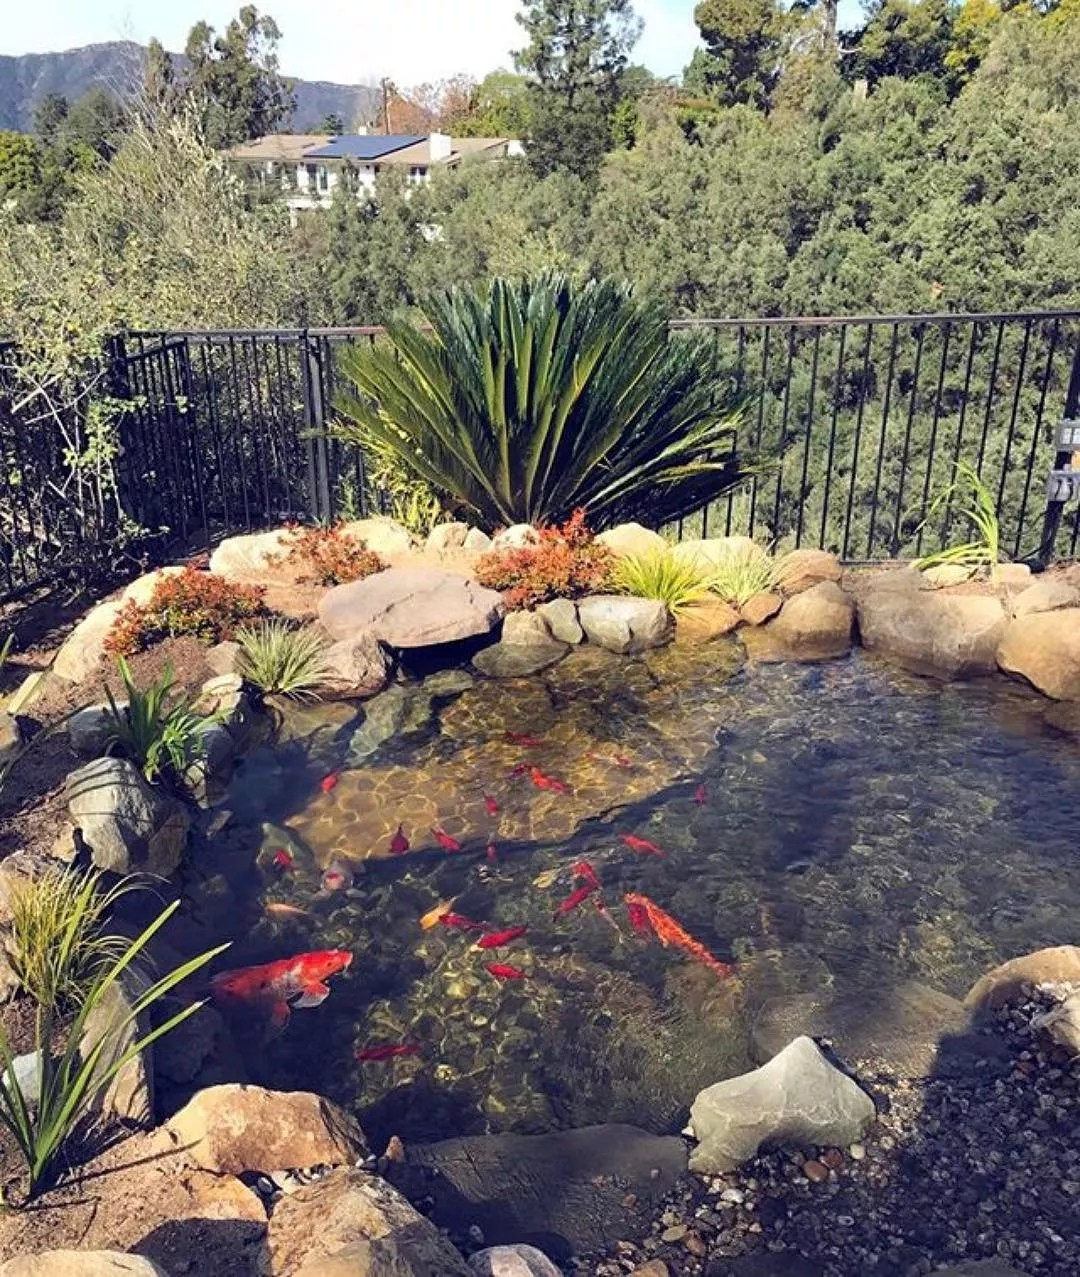 Backyard koi pond surrounded by plants. Photo by Instagram user @proponds_west